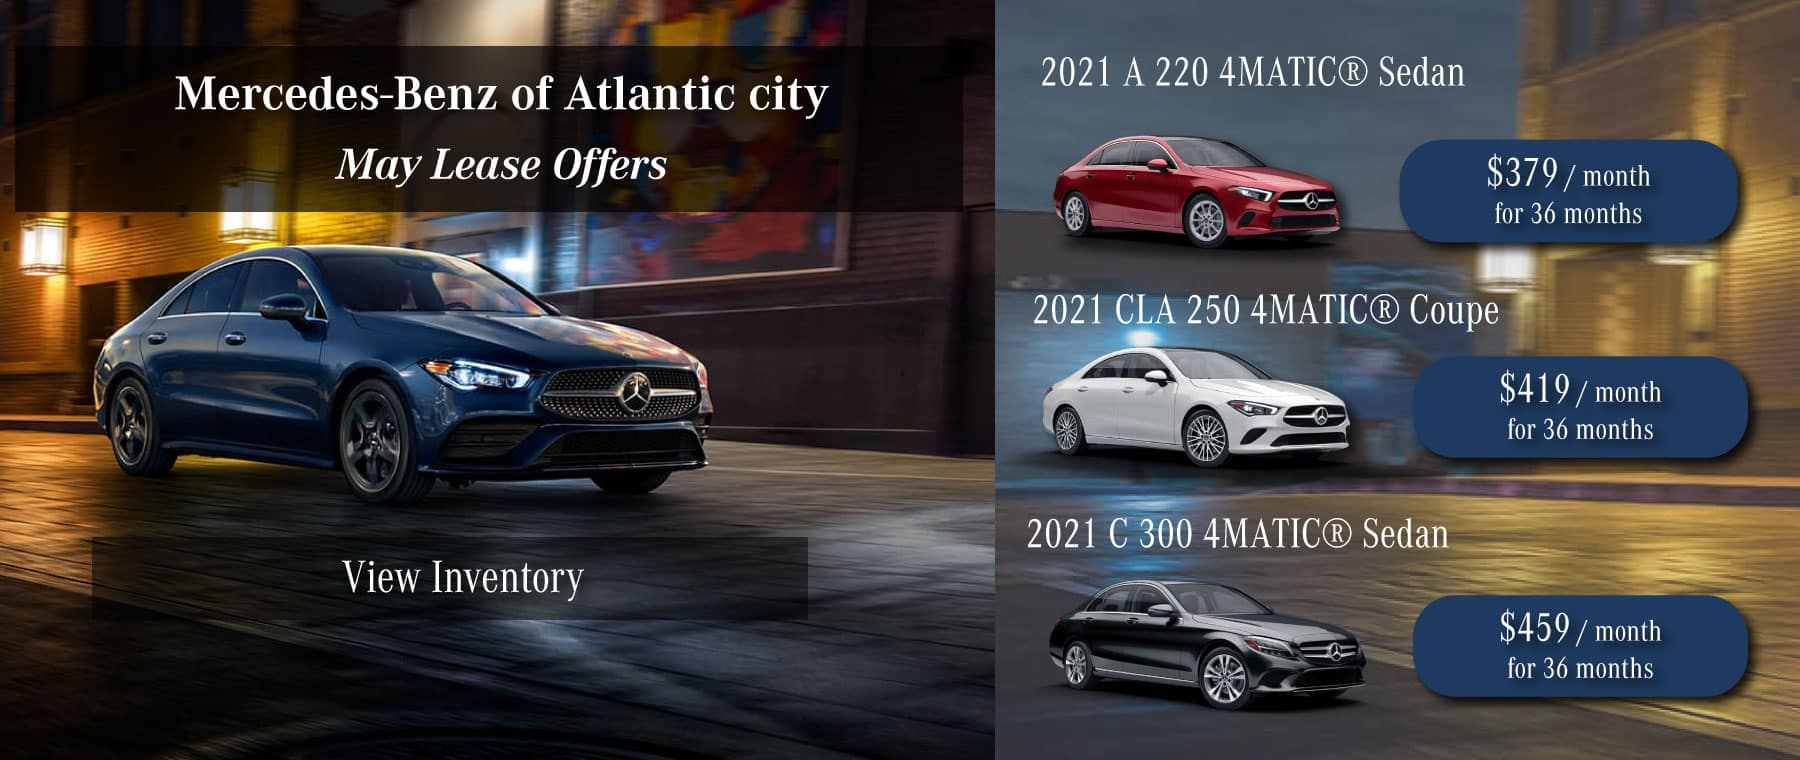 Mercedes-Benz of Atlantic City Lease Specials